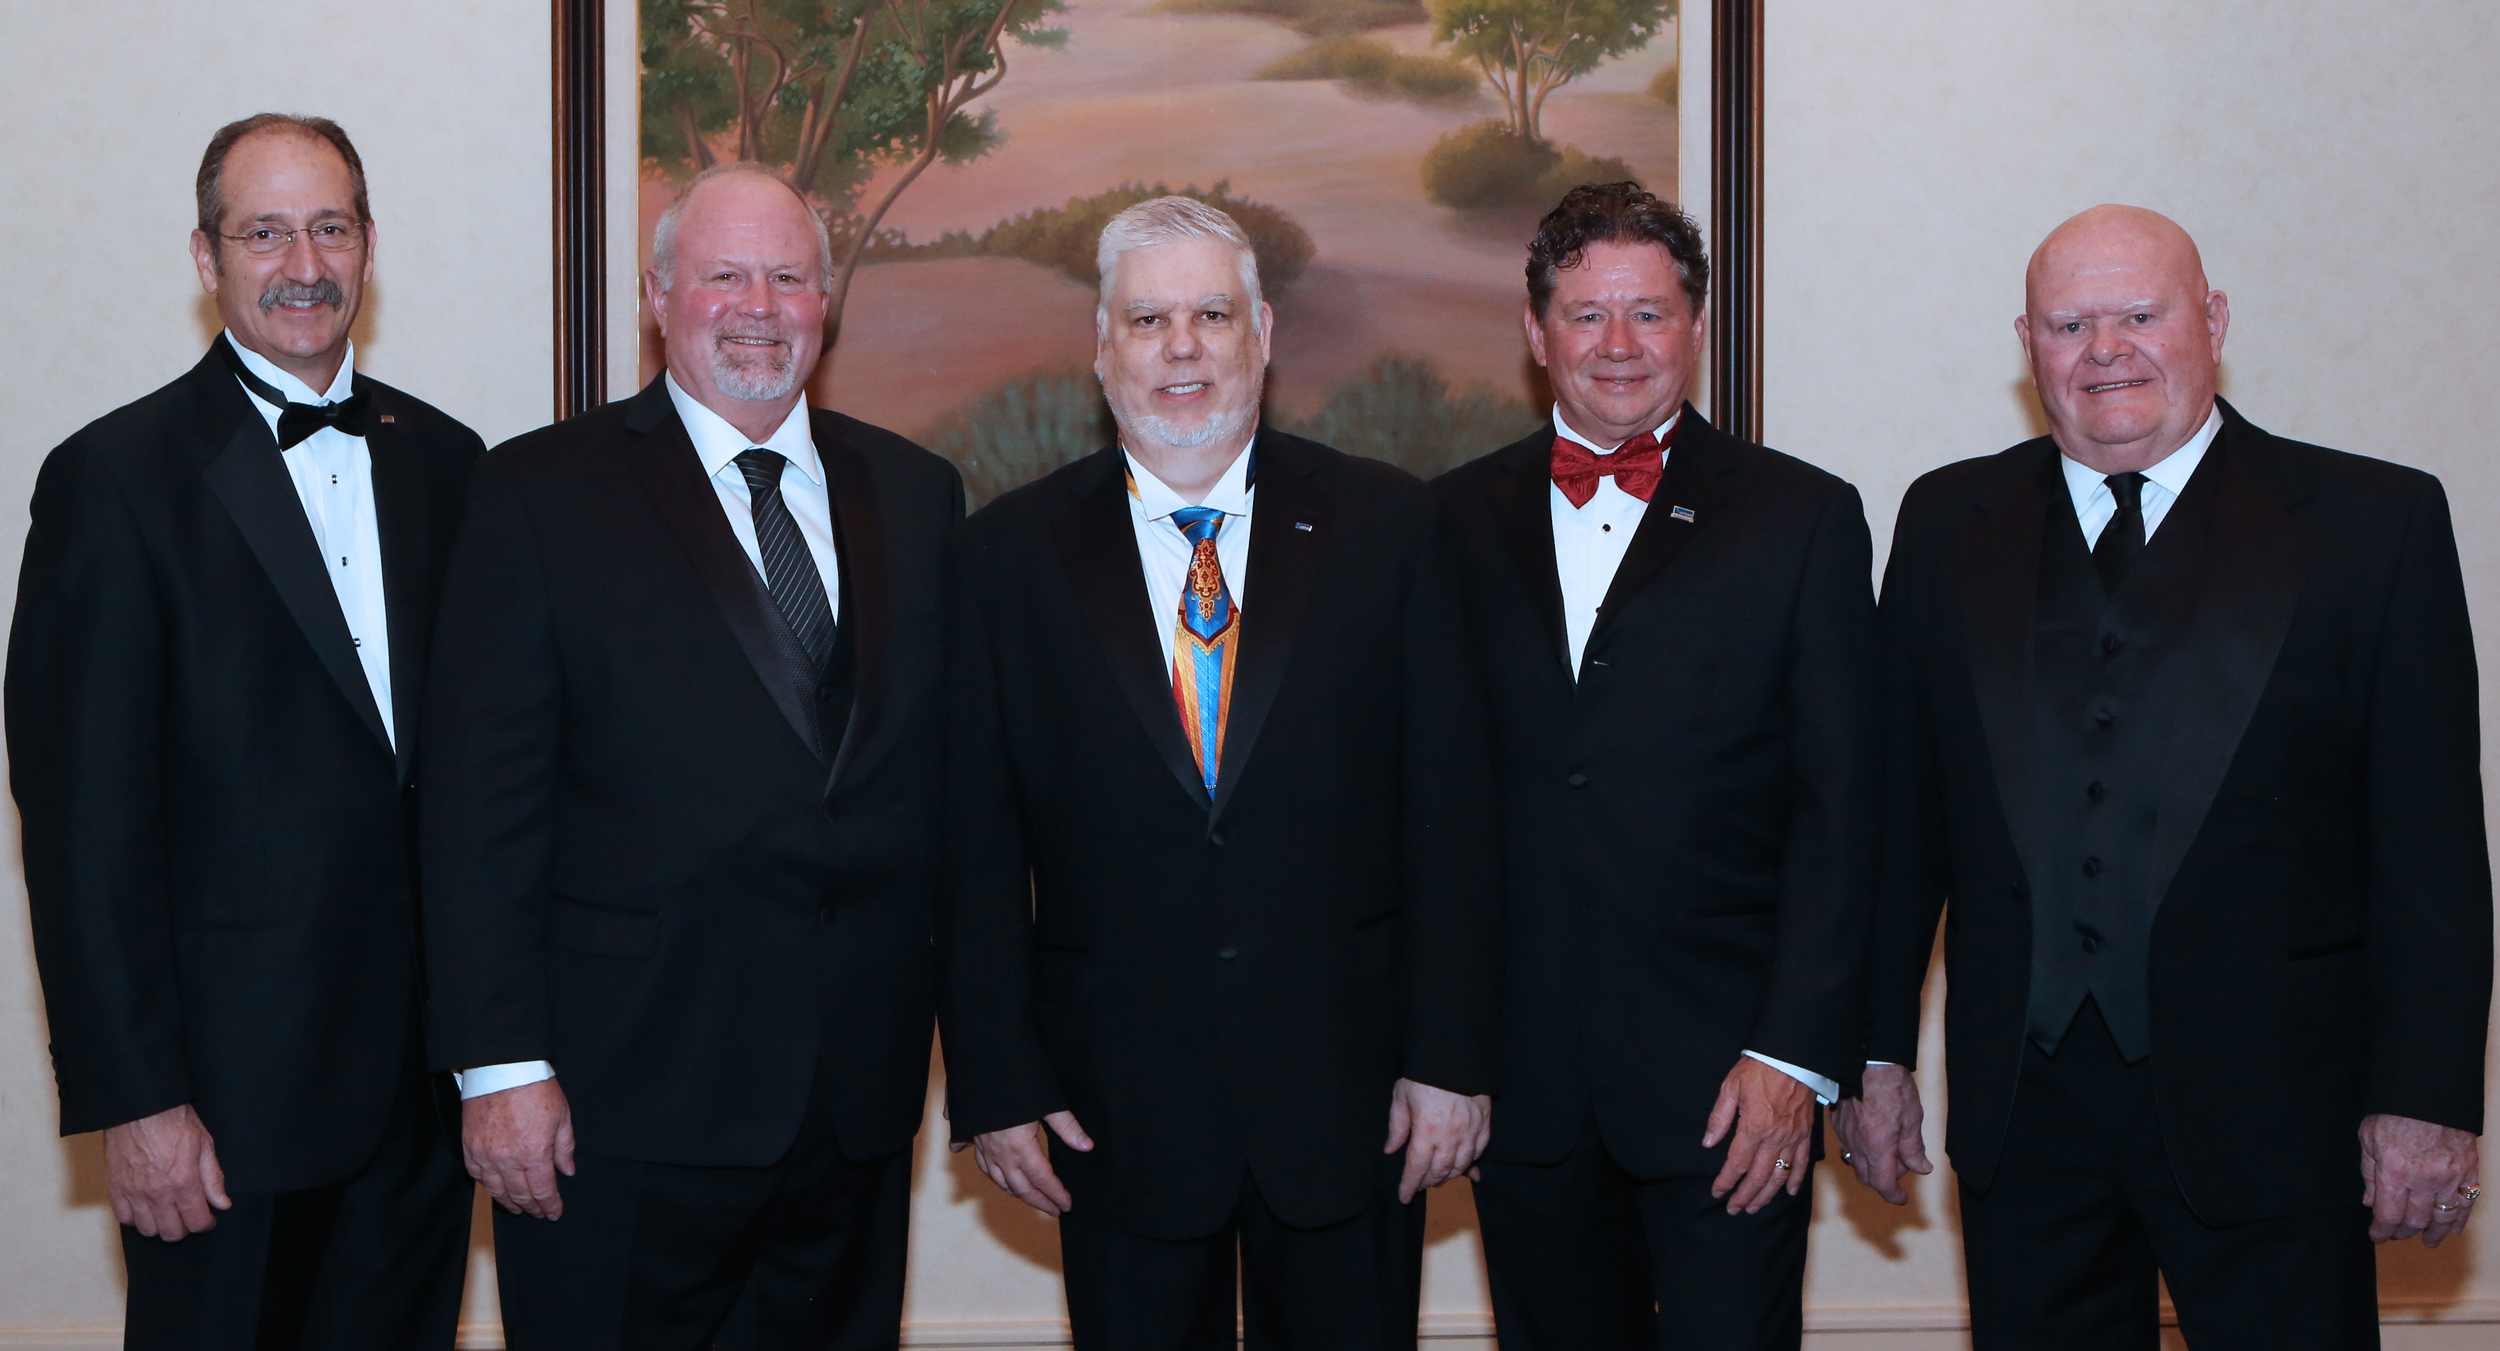 NTMA Officers (L-R): Robert Mosey, Herb Homeyer, Theodore Toth, Dave Sattler and Ken Seilkop.